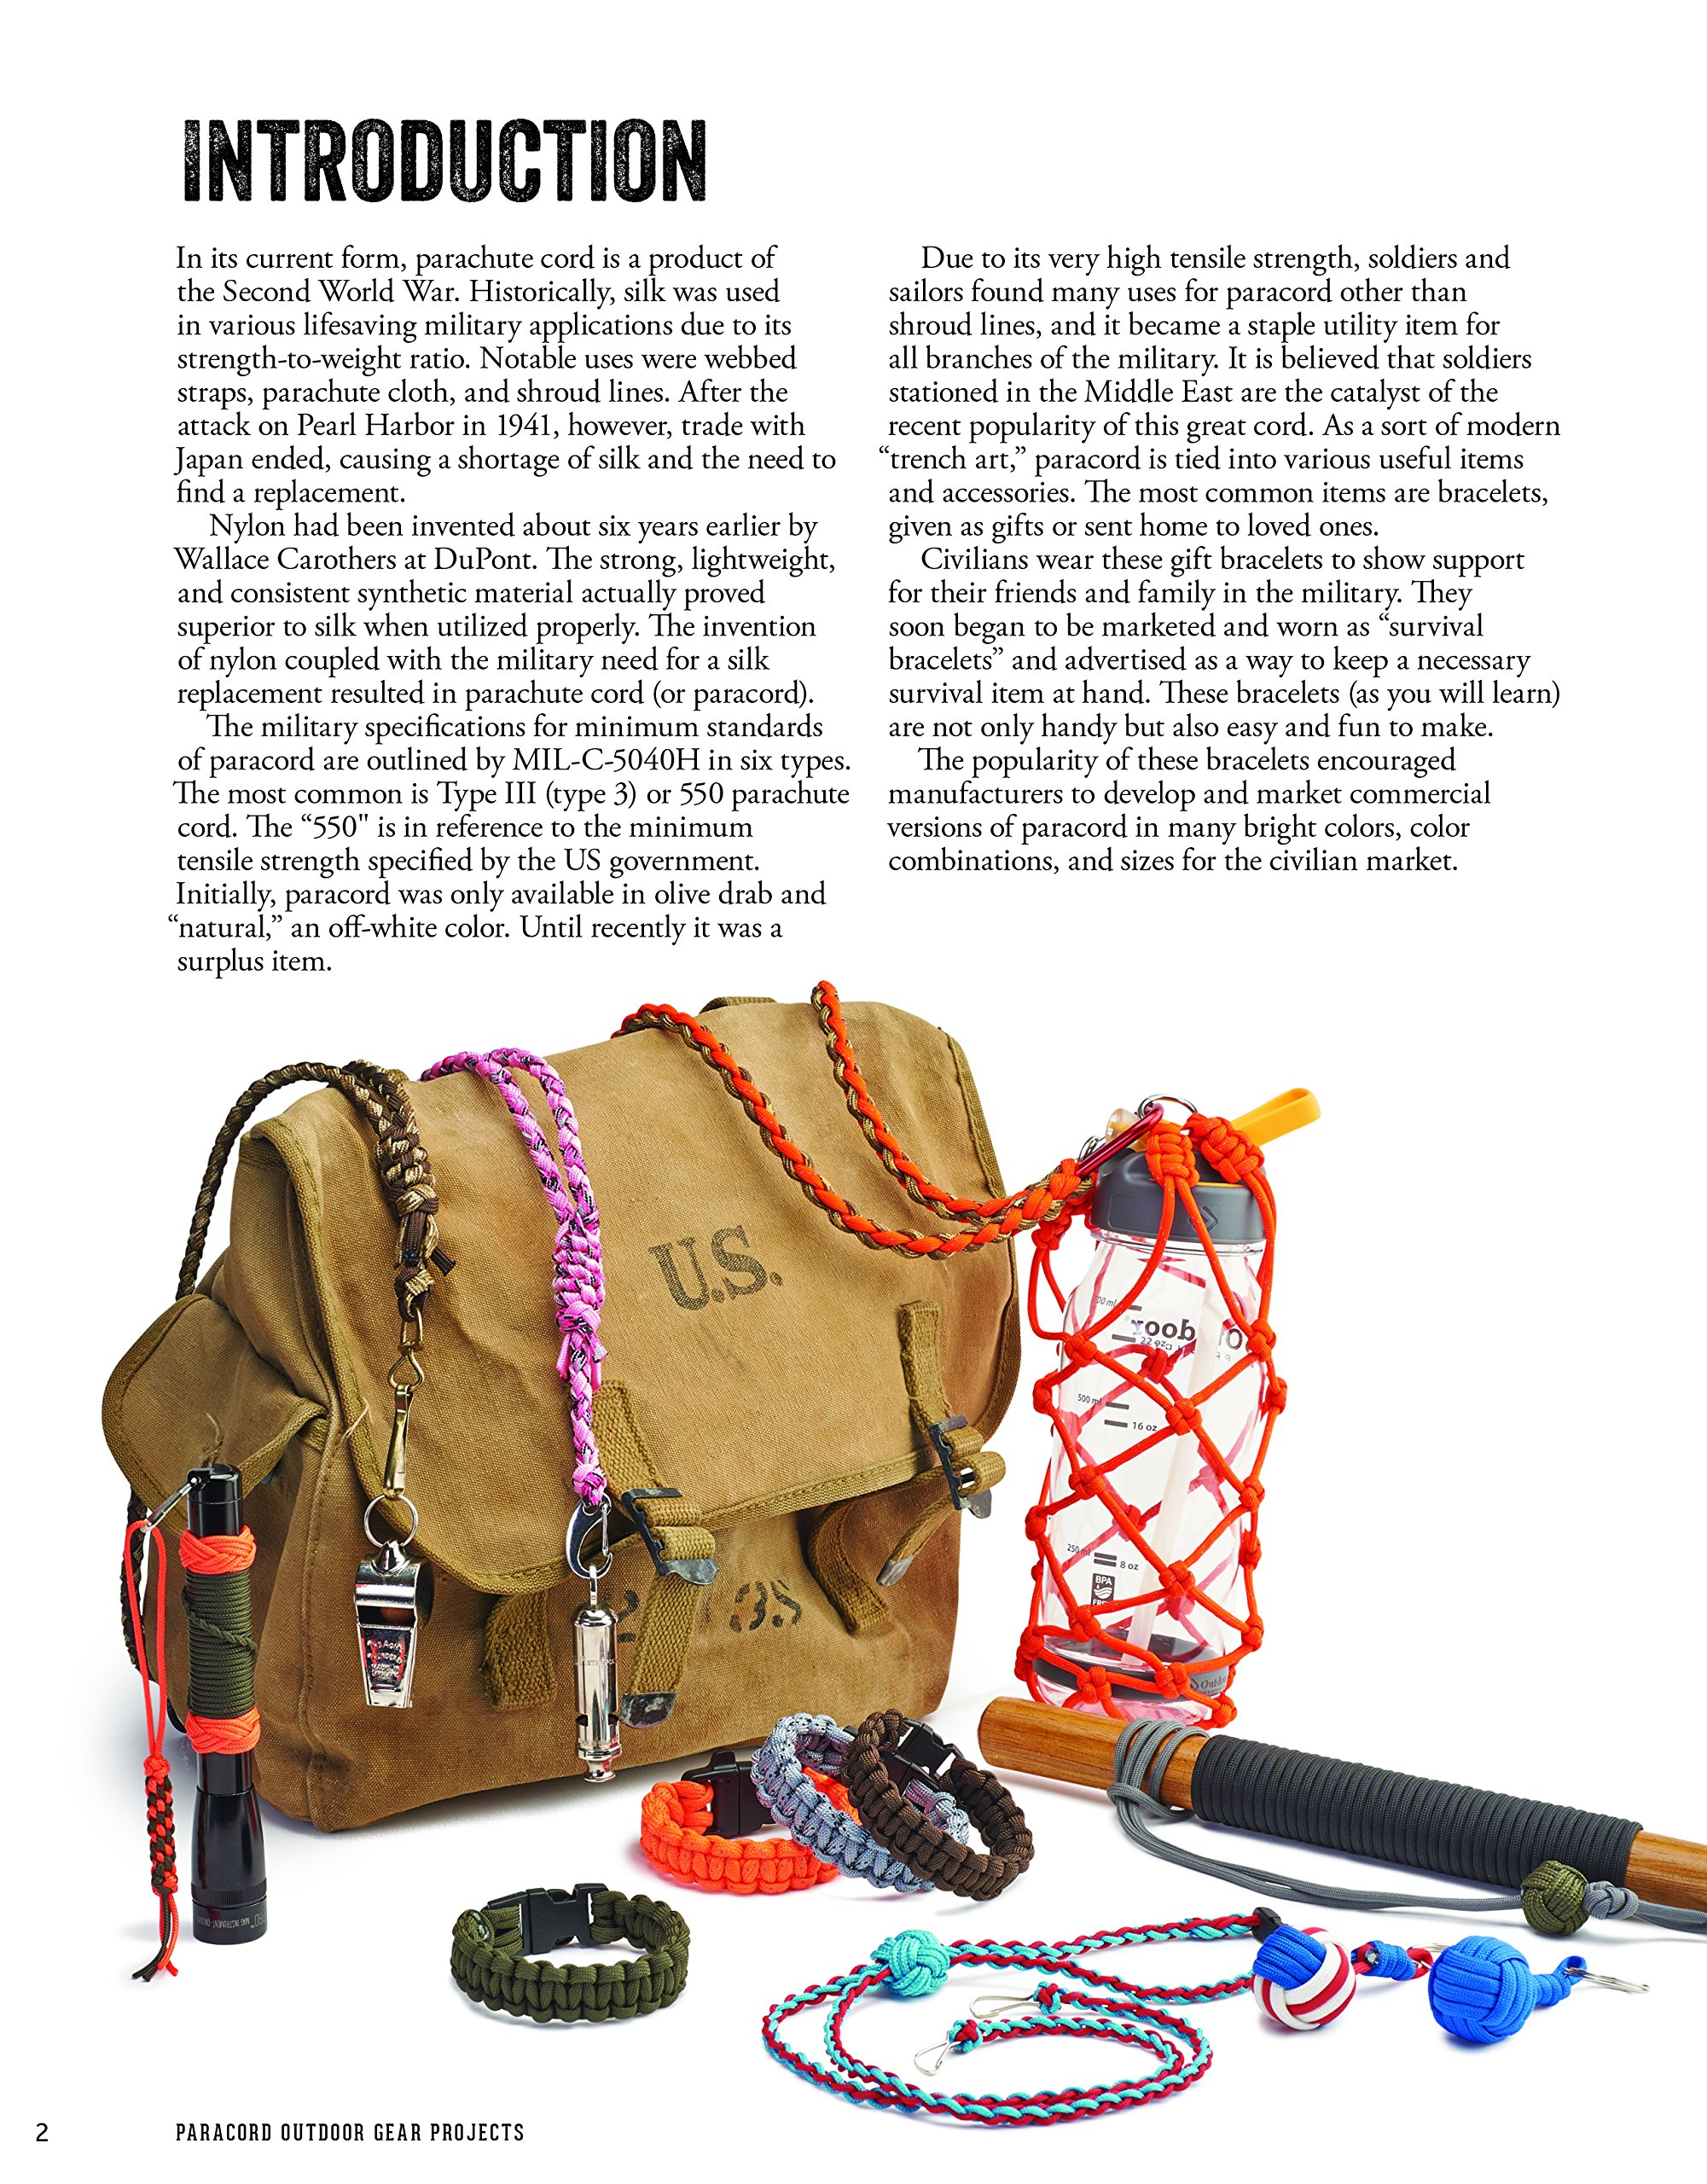 Amazon com: Paracord Outdoor Gear Projects: Simple